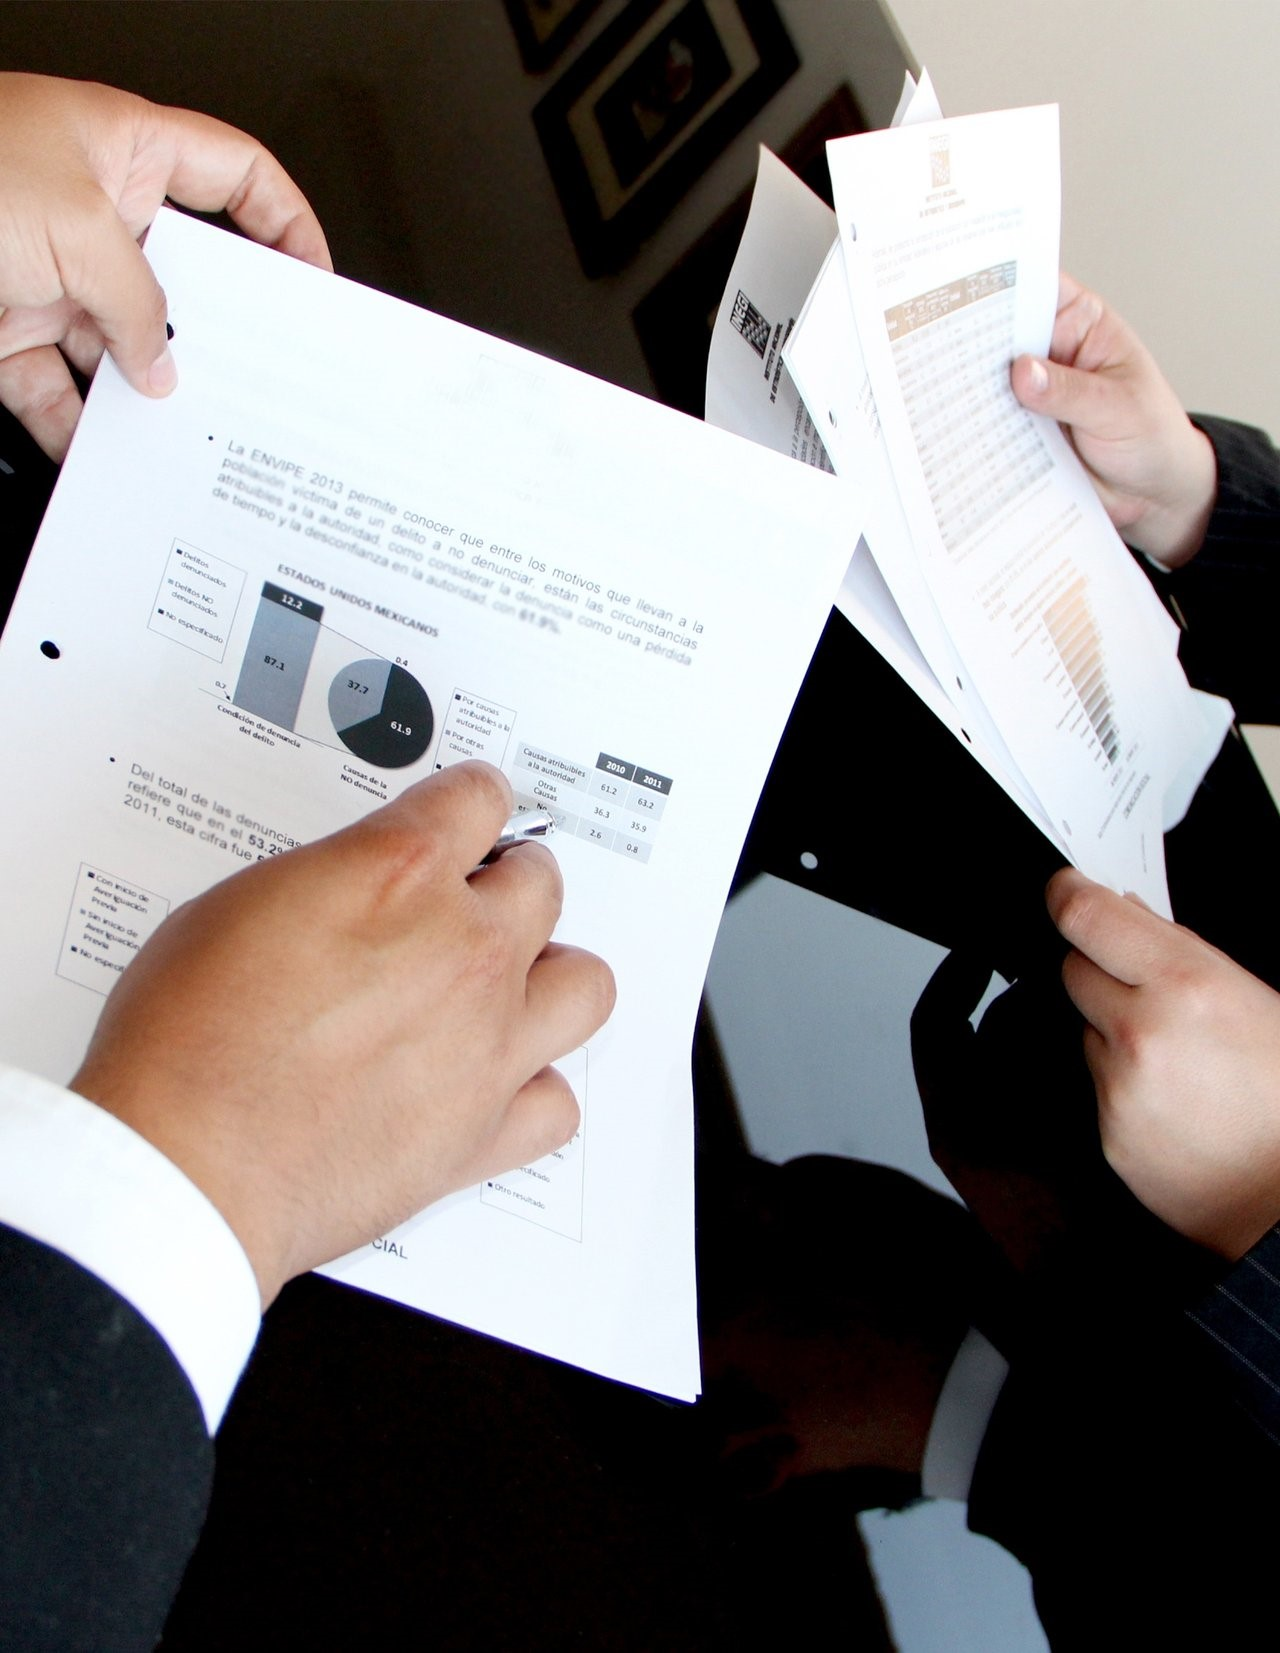 People holding documents with statistics